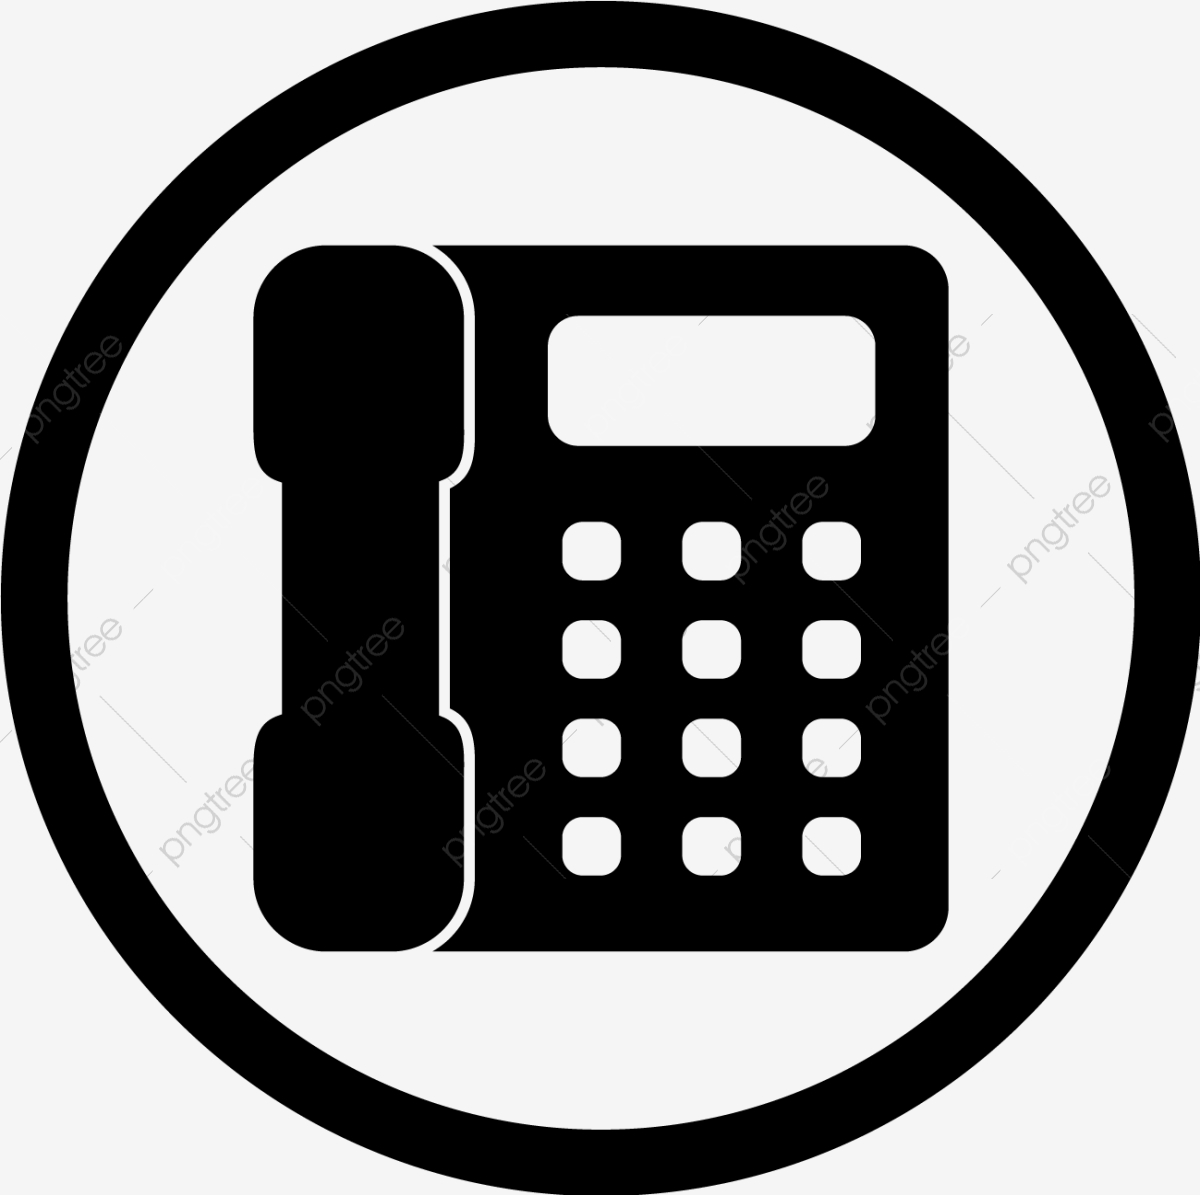 Telephone Png Vector Psd And Clipart With Transparent Background For Free Download Pngtree